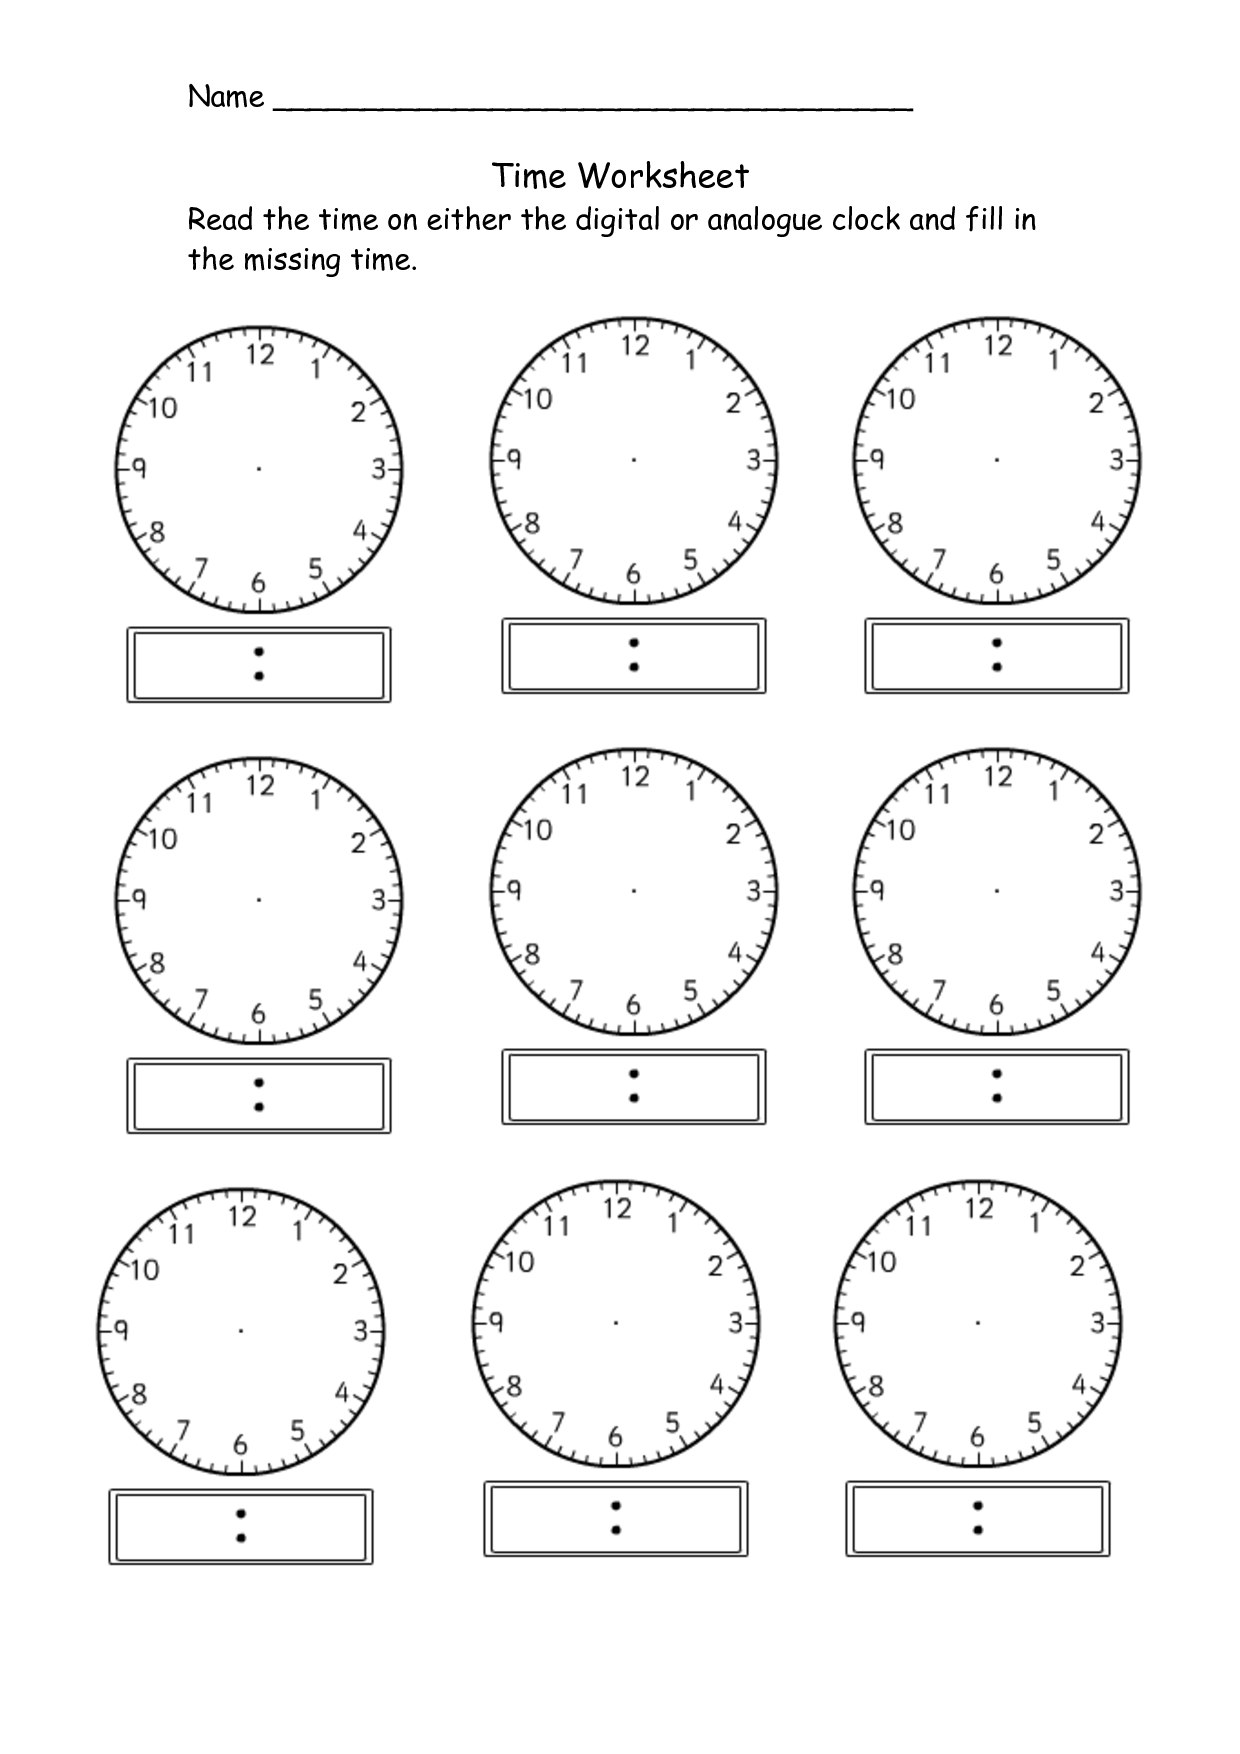 worksheet Digital Clock Worksheets blank clock worksheet telling time kiddo shelter education home office 15 best images of digital worksheets intended for clocks the most amazing